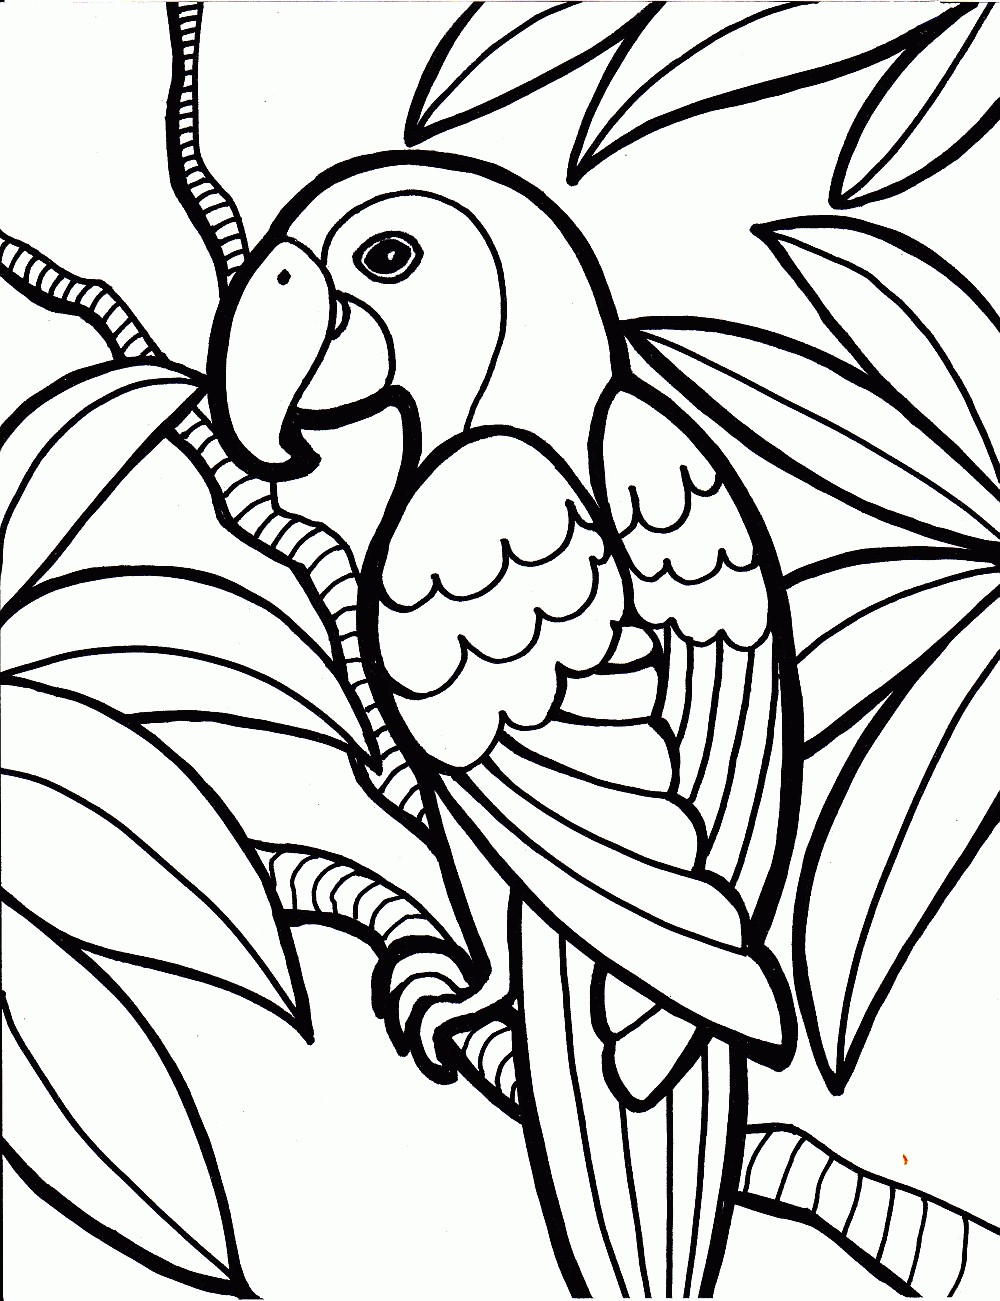 Tropical Bird Coloring Pages at GetDrawings.com | Free for personal ...